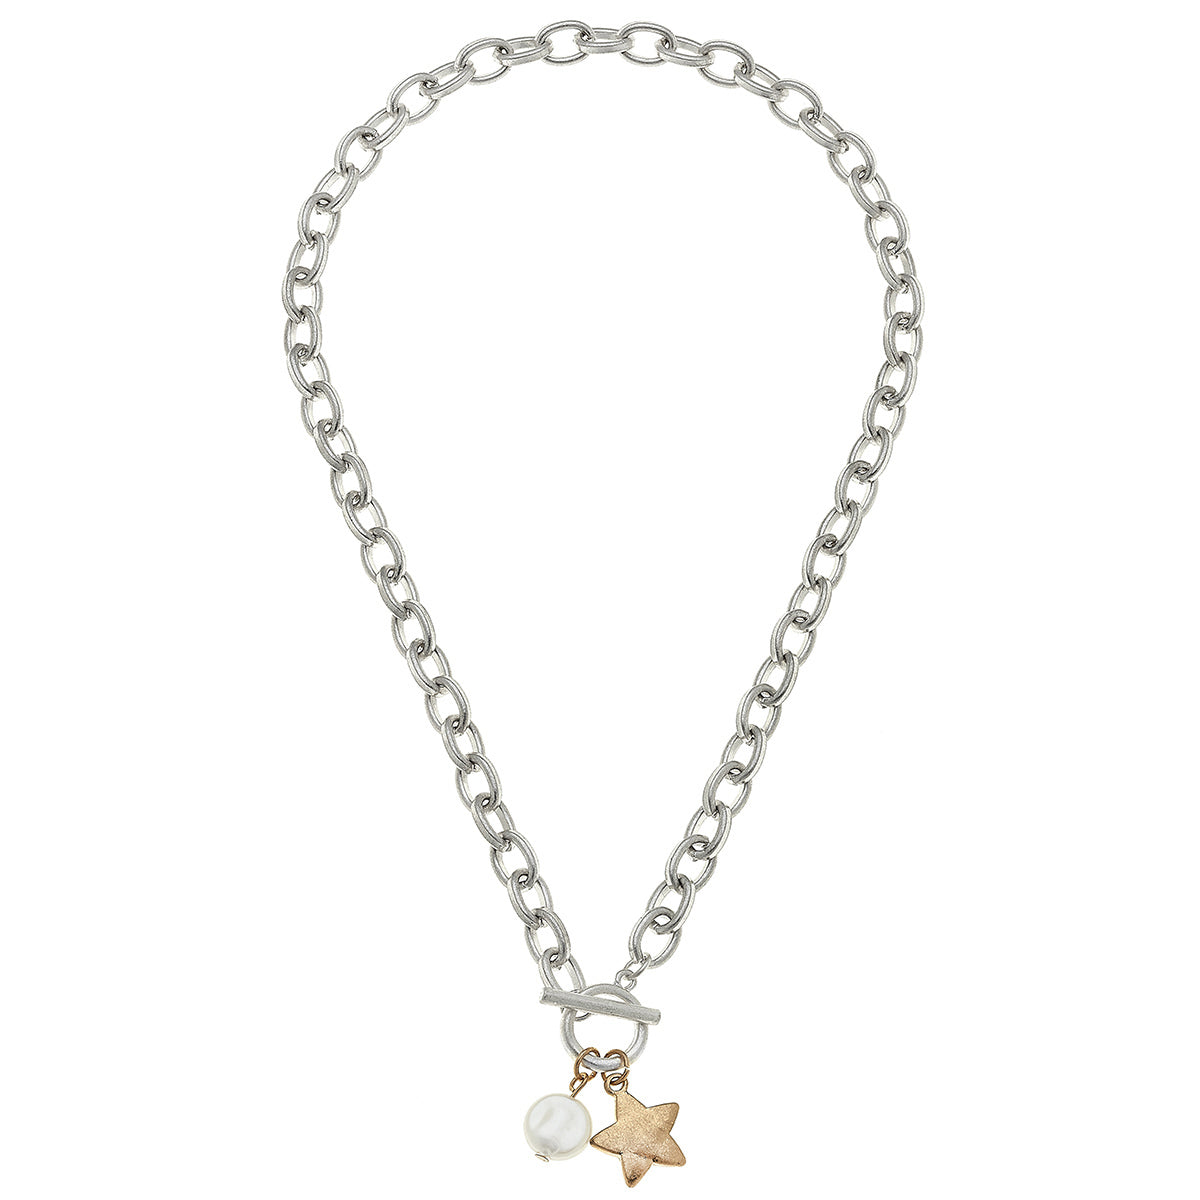 Star T-Bar Charm Necklace in Worn Silver